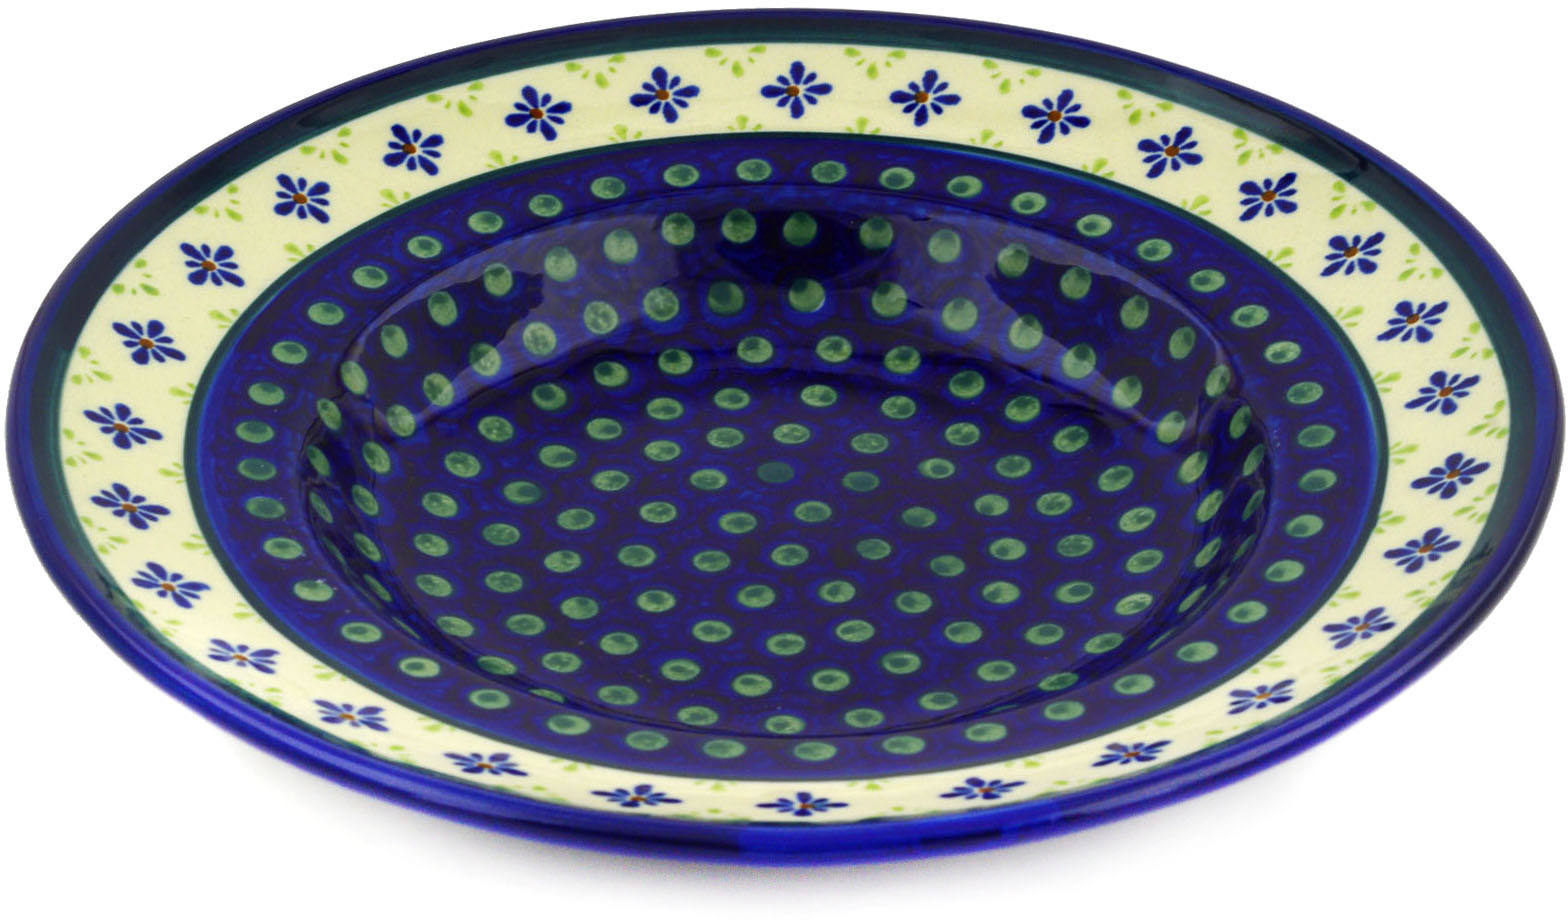 Polish Pottery 11�-inch Pasta Bowl (Green Gingham Peacock Theme) Hand Painted in Boleslawiec, Poland +... by Zaklady Ceramiczne